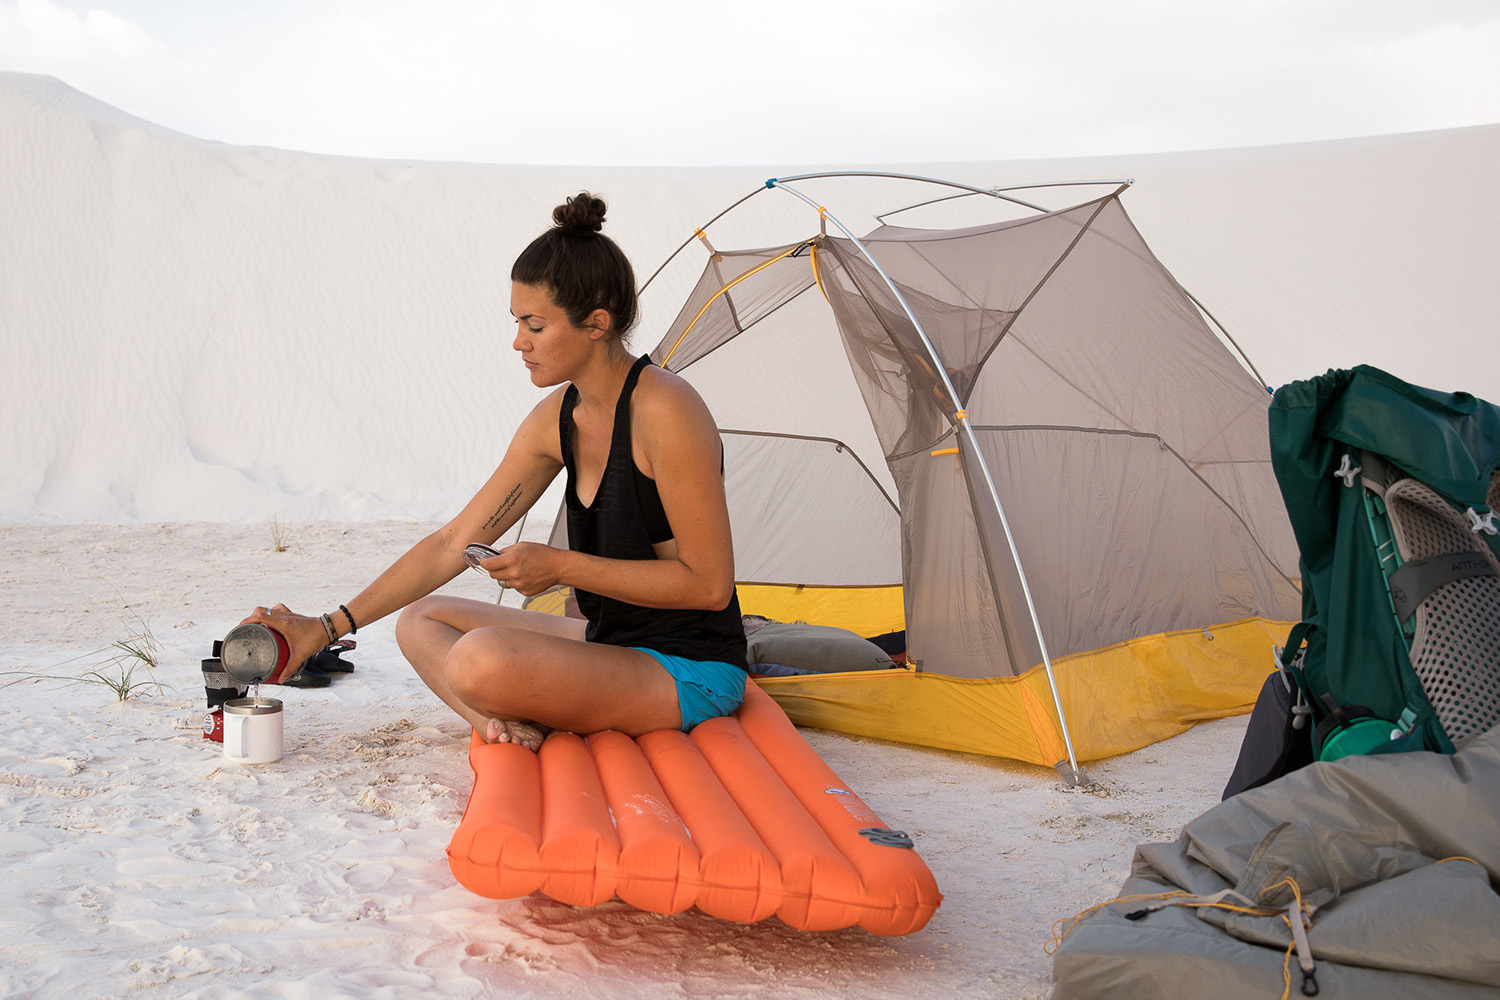 Elizabeth Brentano making coffee at White Sands National Monument